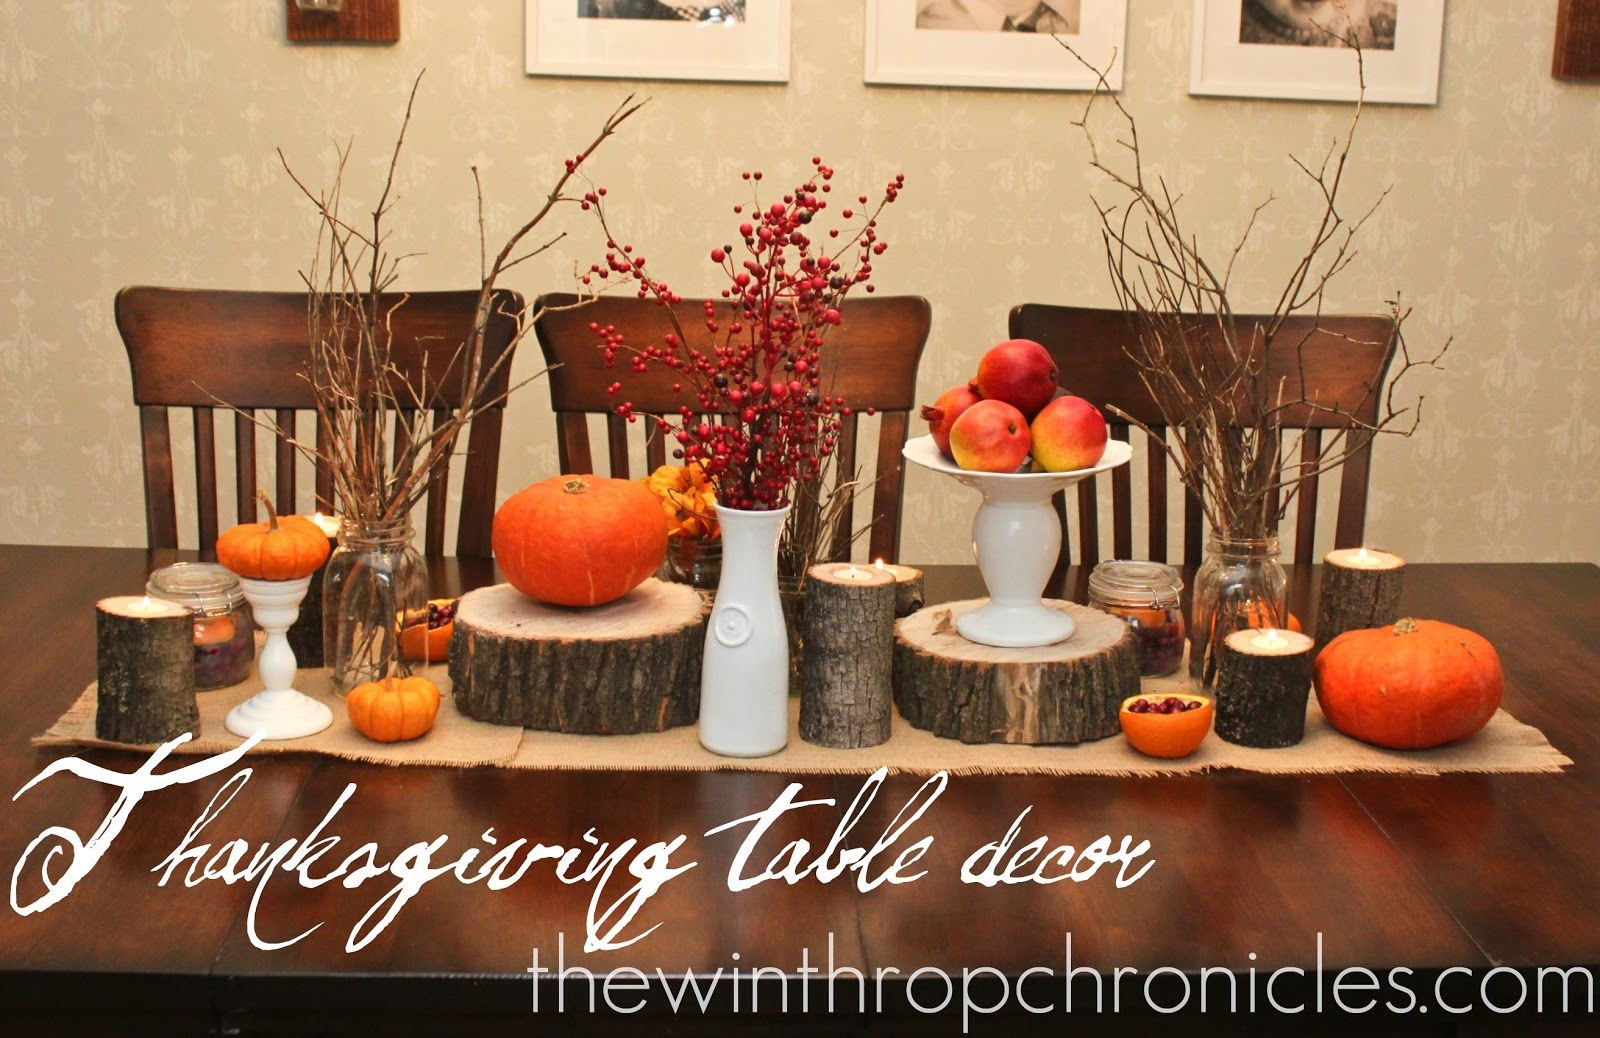 The Winthrop Chronicles Thanksgiving Table Decor